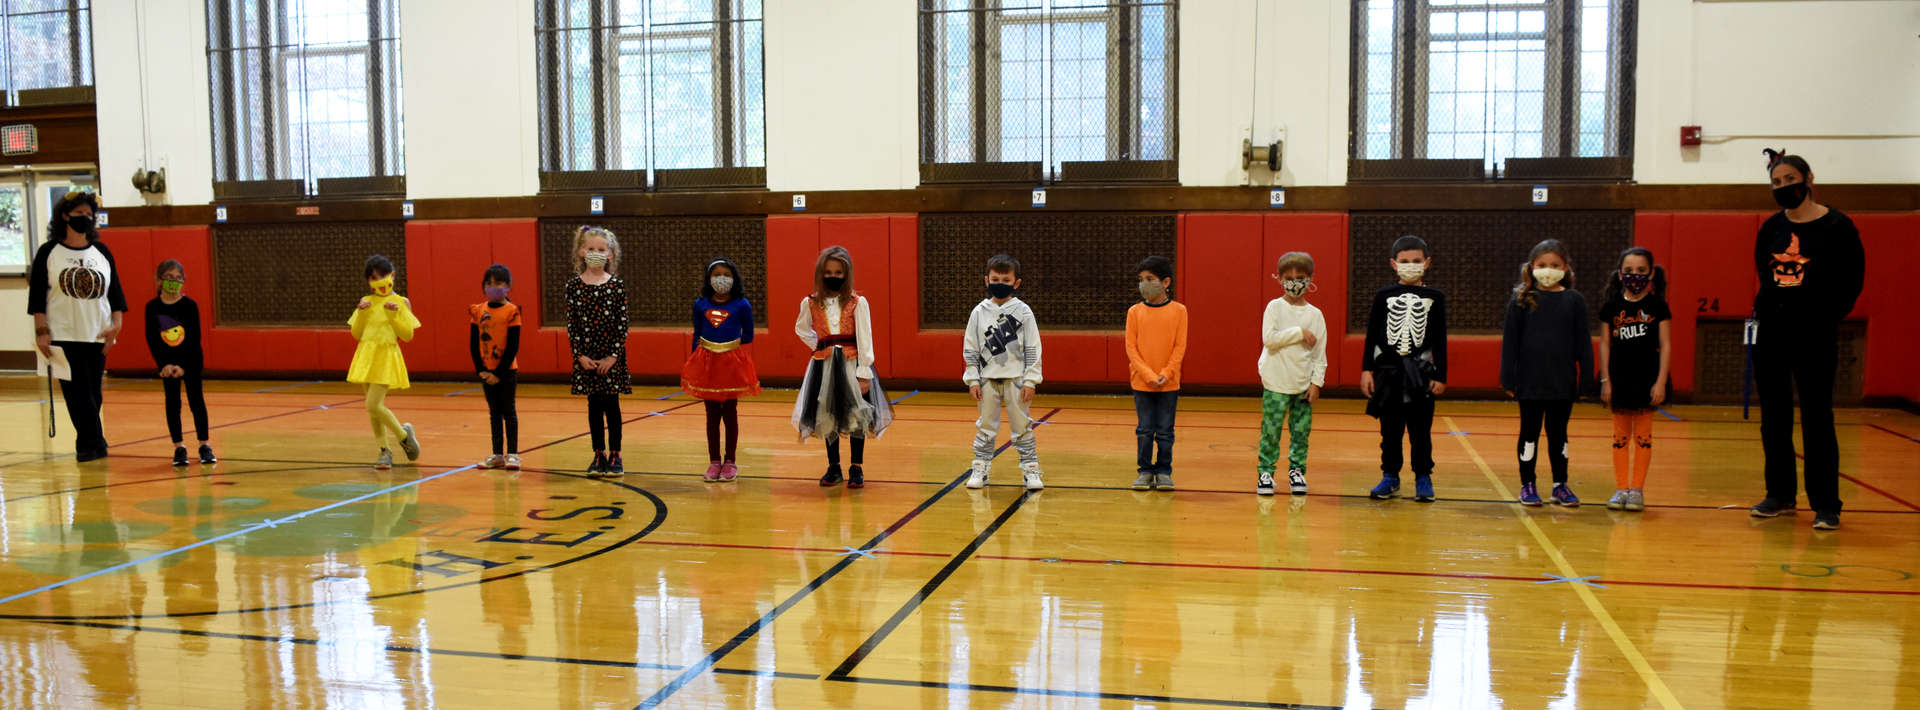 students line up in the gym in their costumes